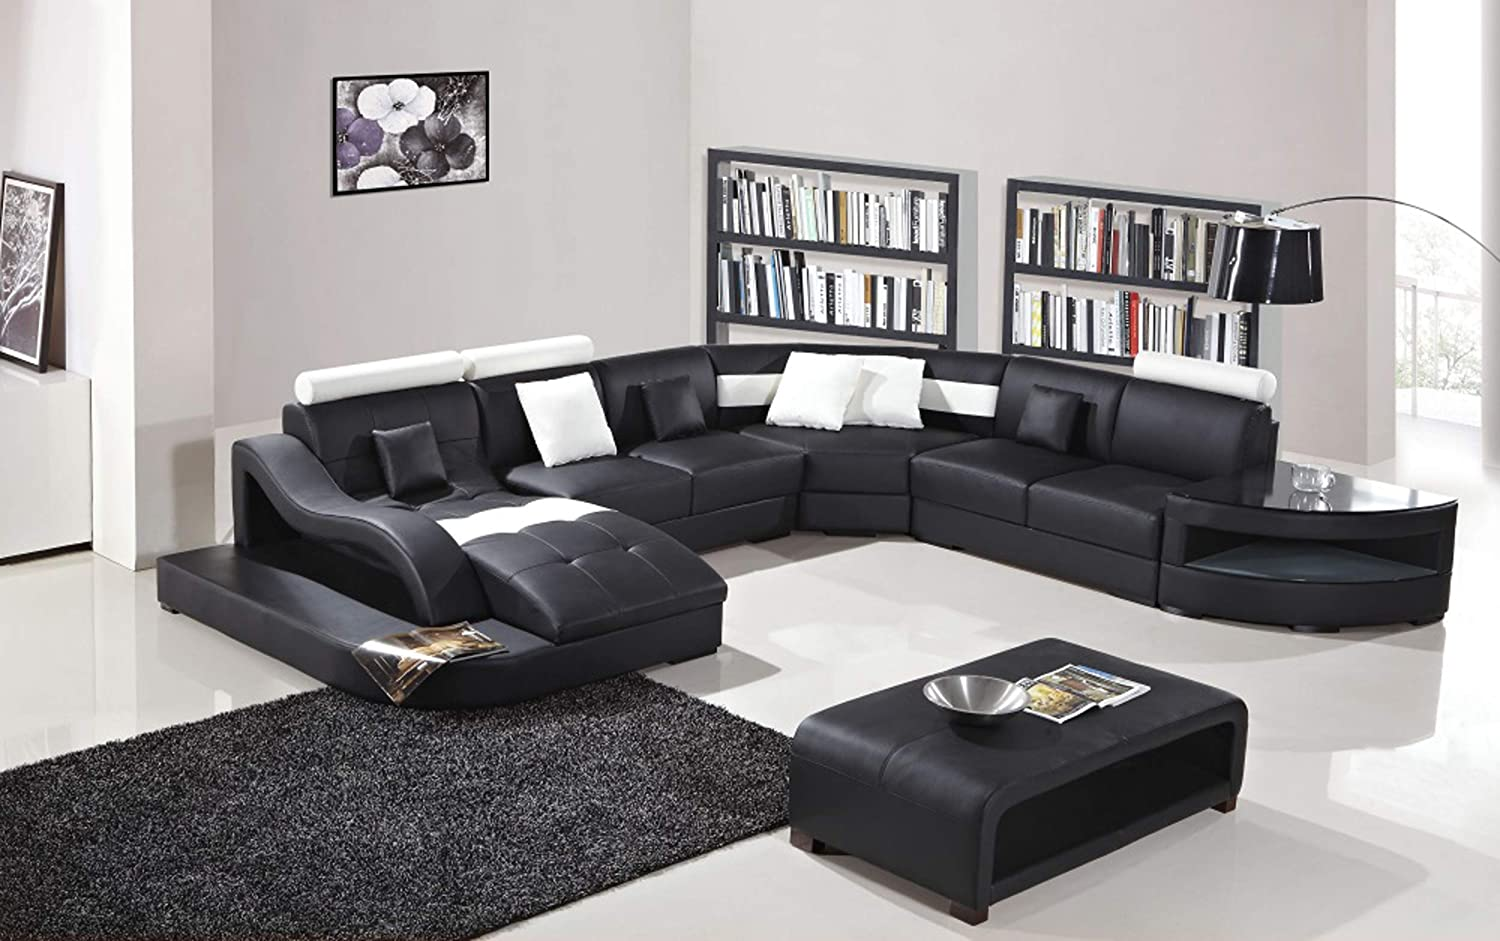 Oakland living t327 sec ct bk black white contemporary real leather furniture chaise lounge storage shelves coffee table modern sectional living room set